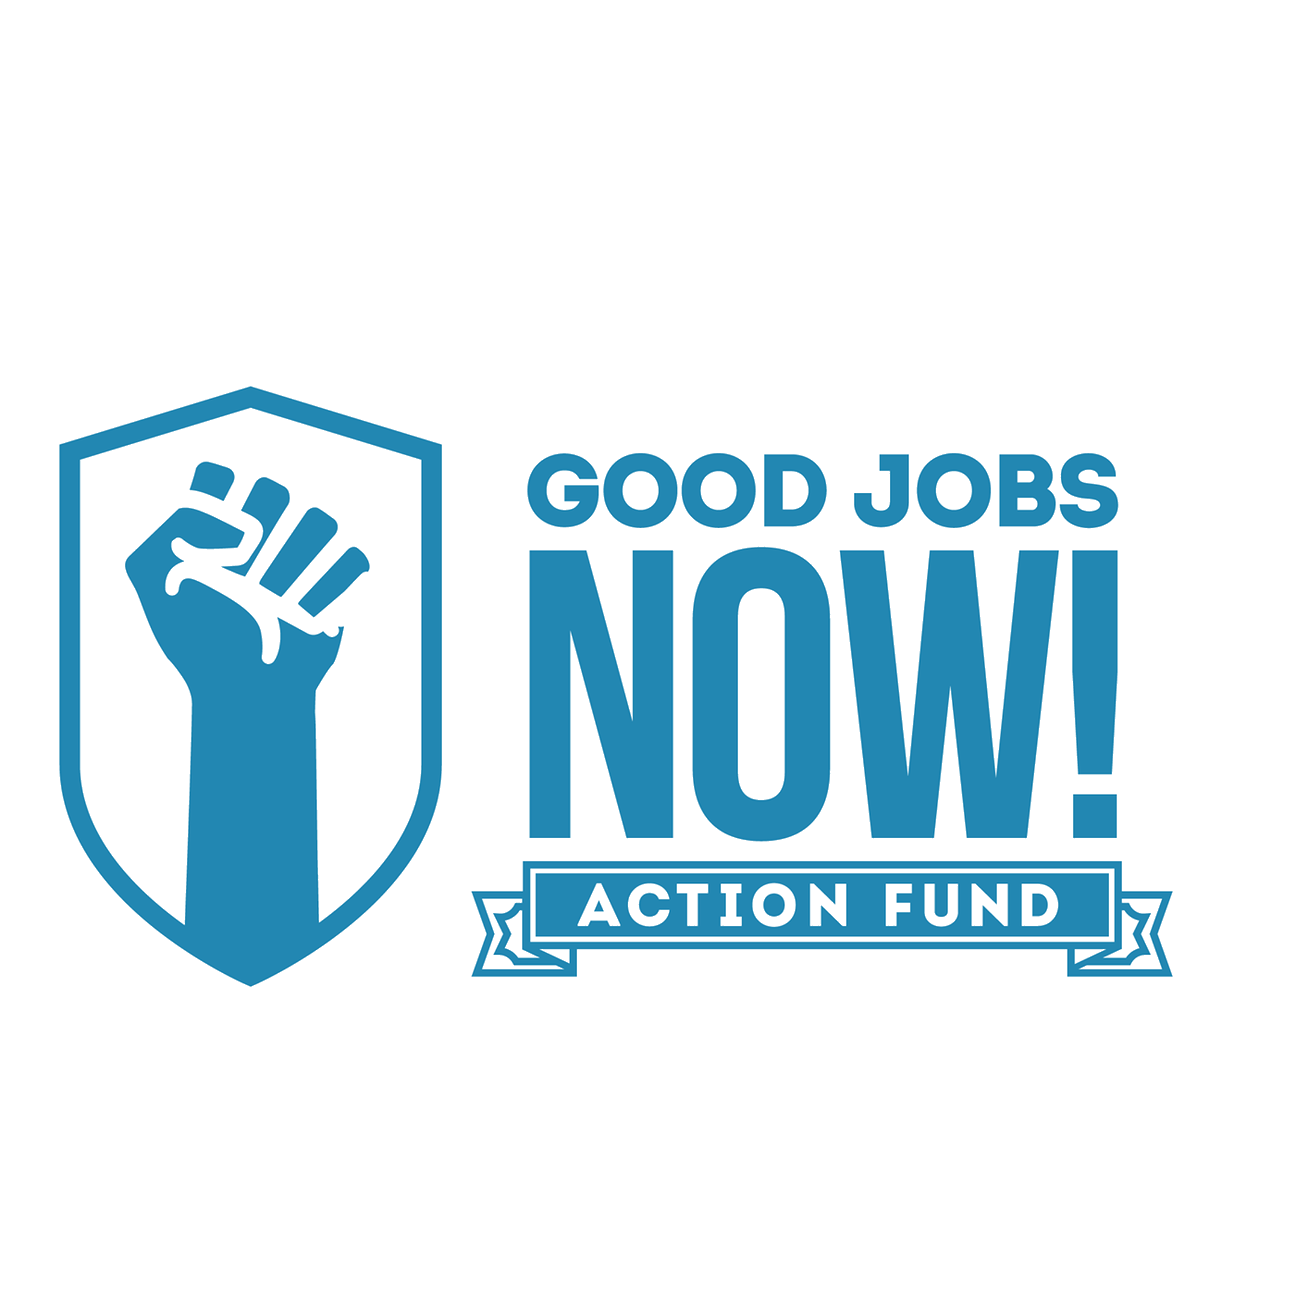 Good Jobs Now